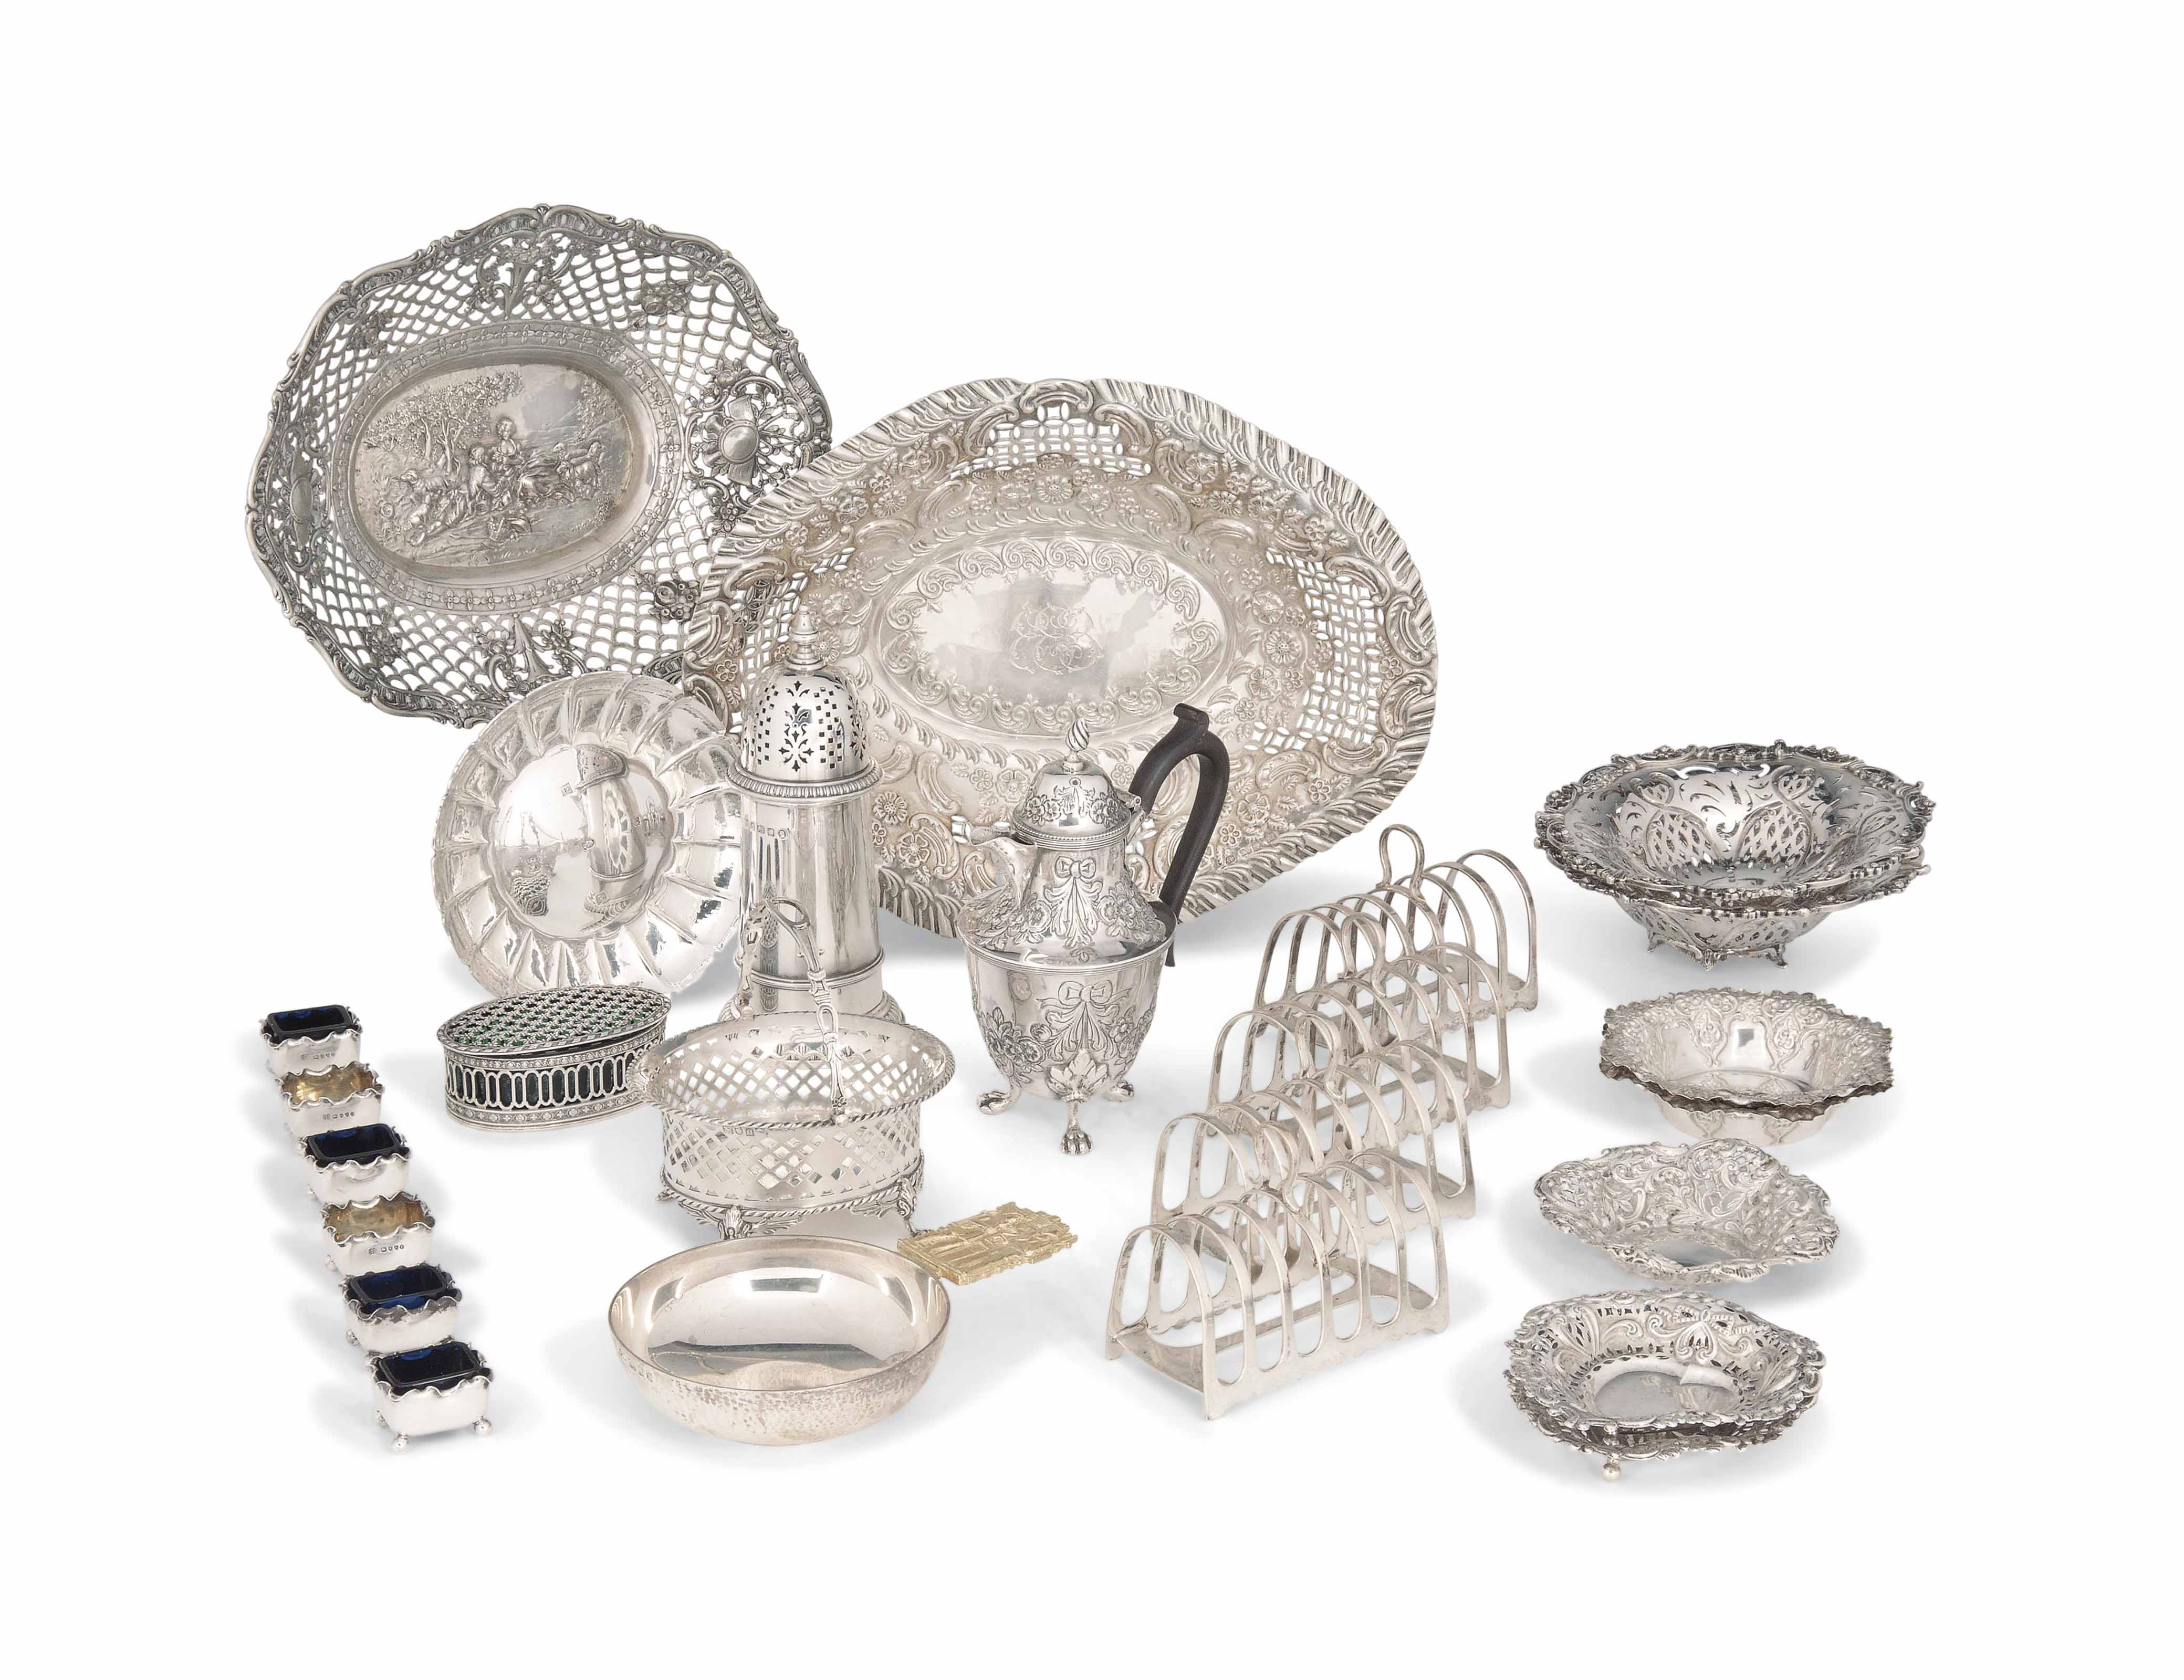 A LARGE GROUP OF SILVER ITEMS